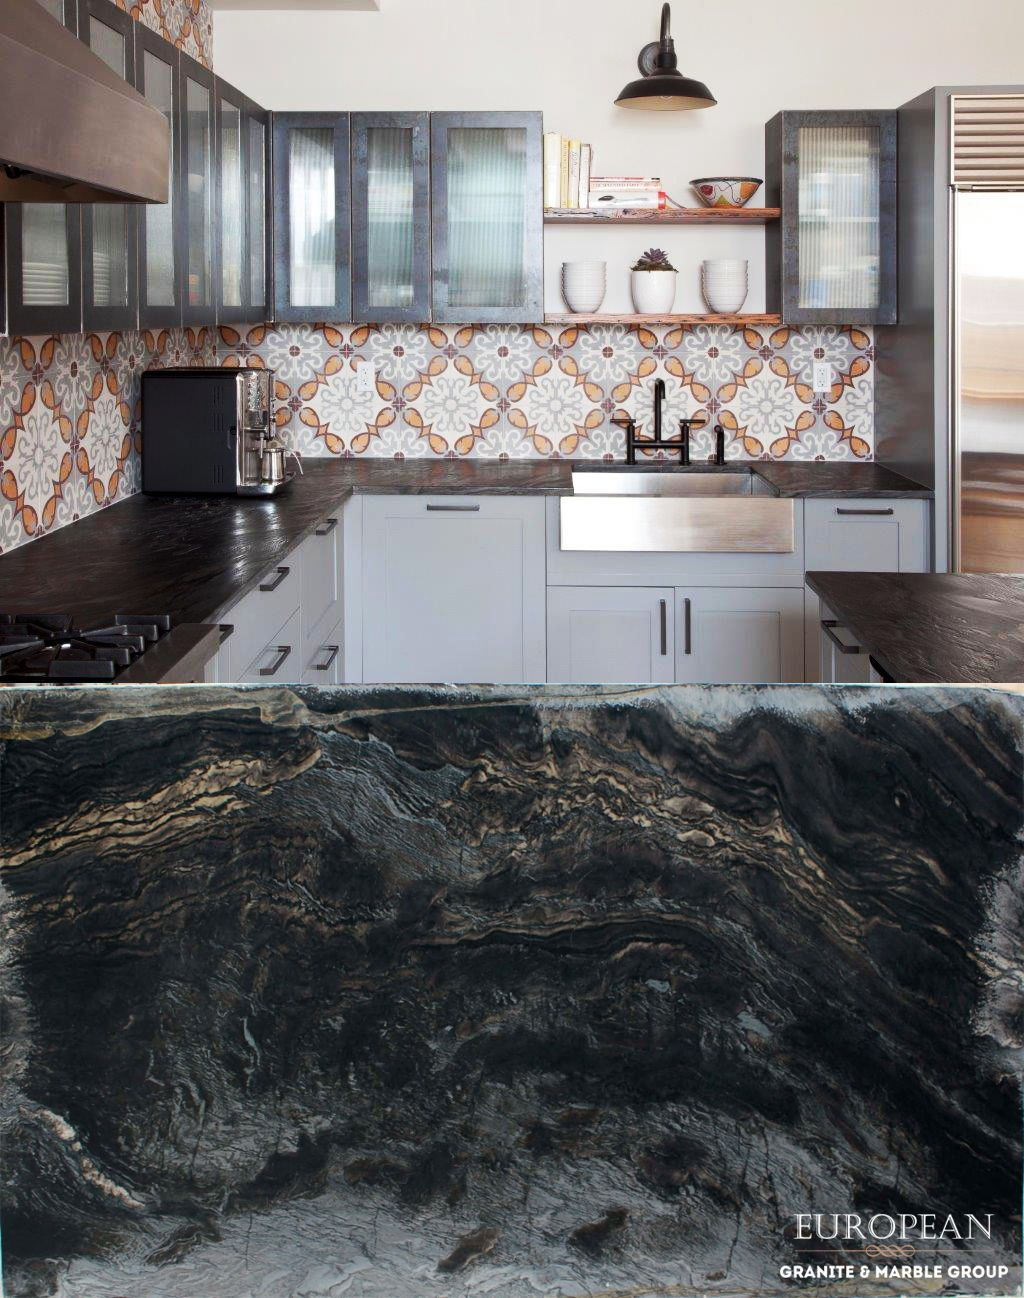 Choosing Stone With A Brushed Finish Will Give Your Countertops A Completely Different Look To That Of A Polished Finish To Create A Brushed F Retro Home Decor